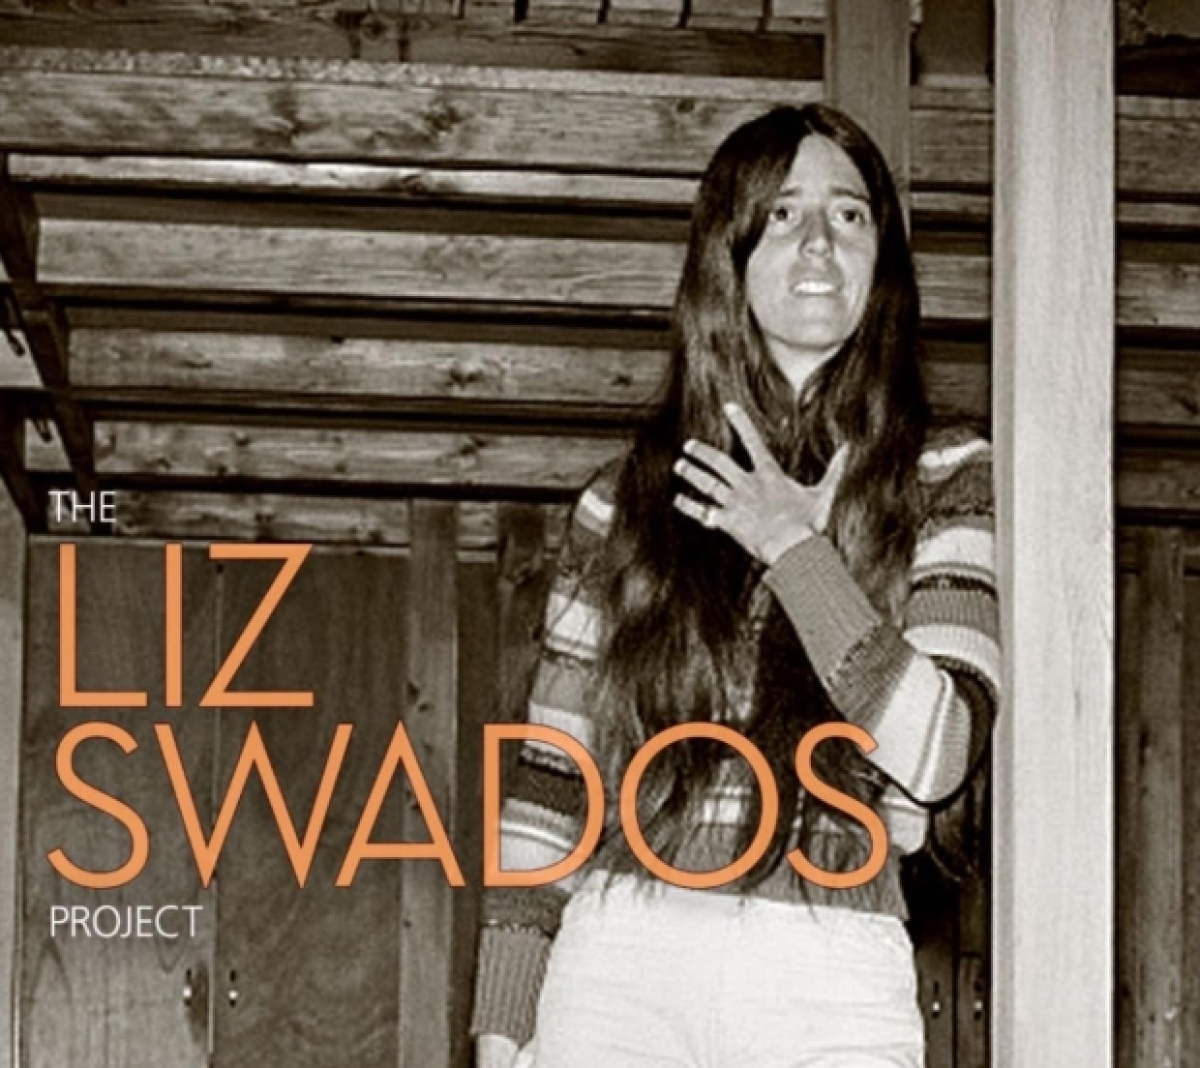 New Elizabeth Swados Album to Be Released by Ghostlight Records | TheaterMania